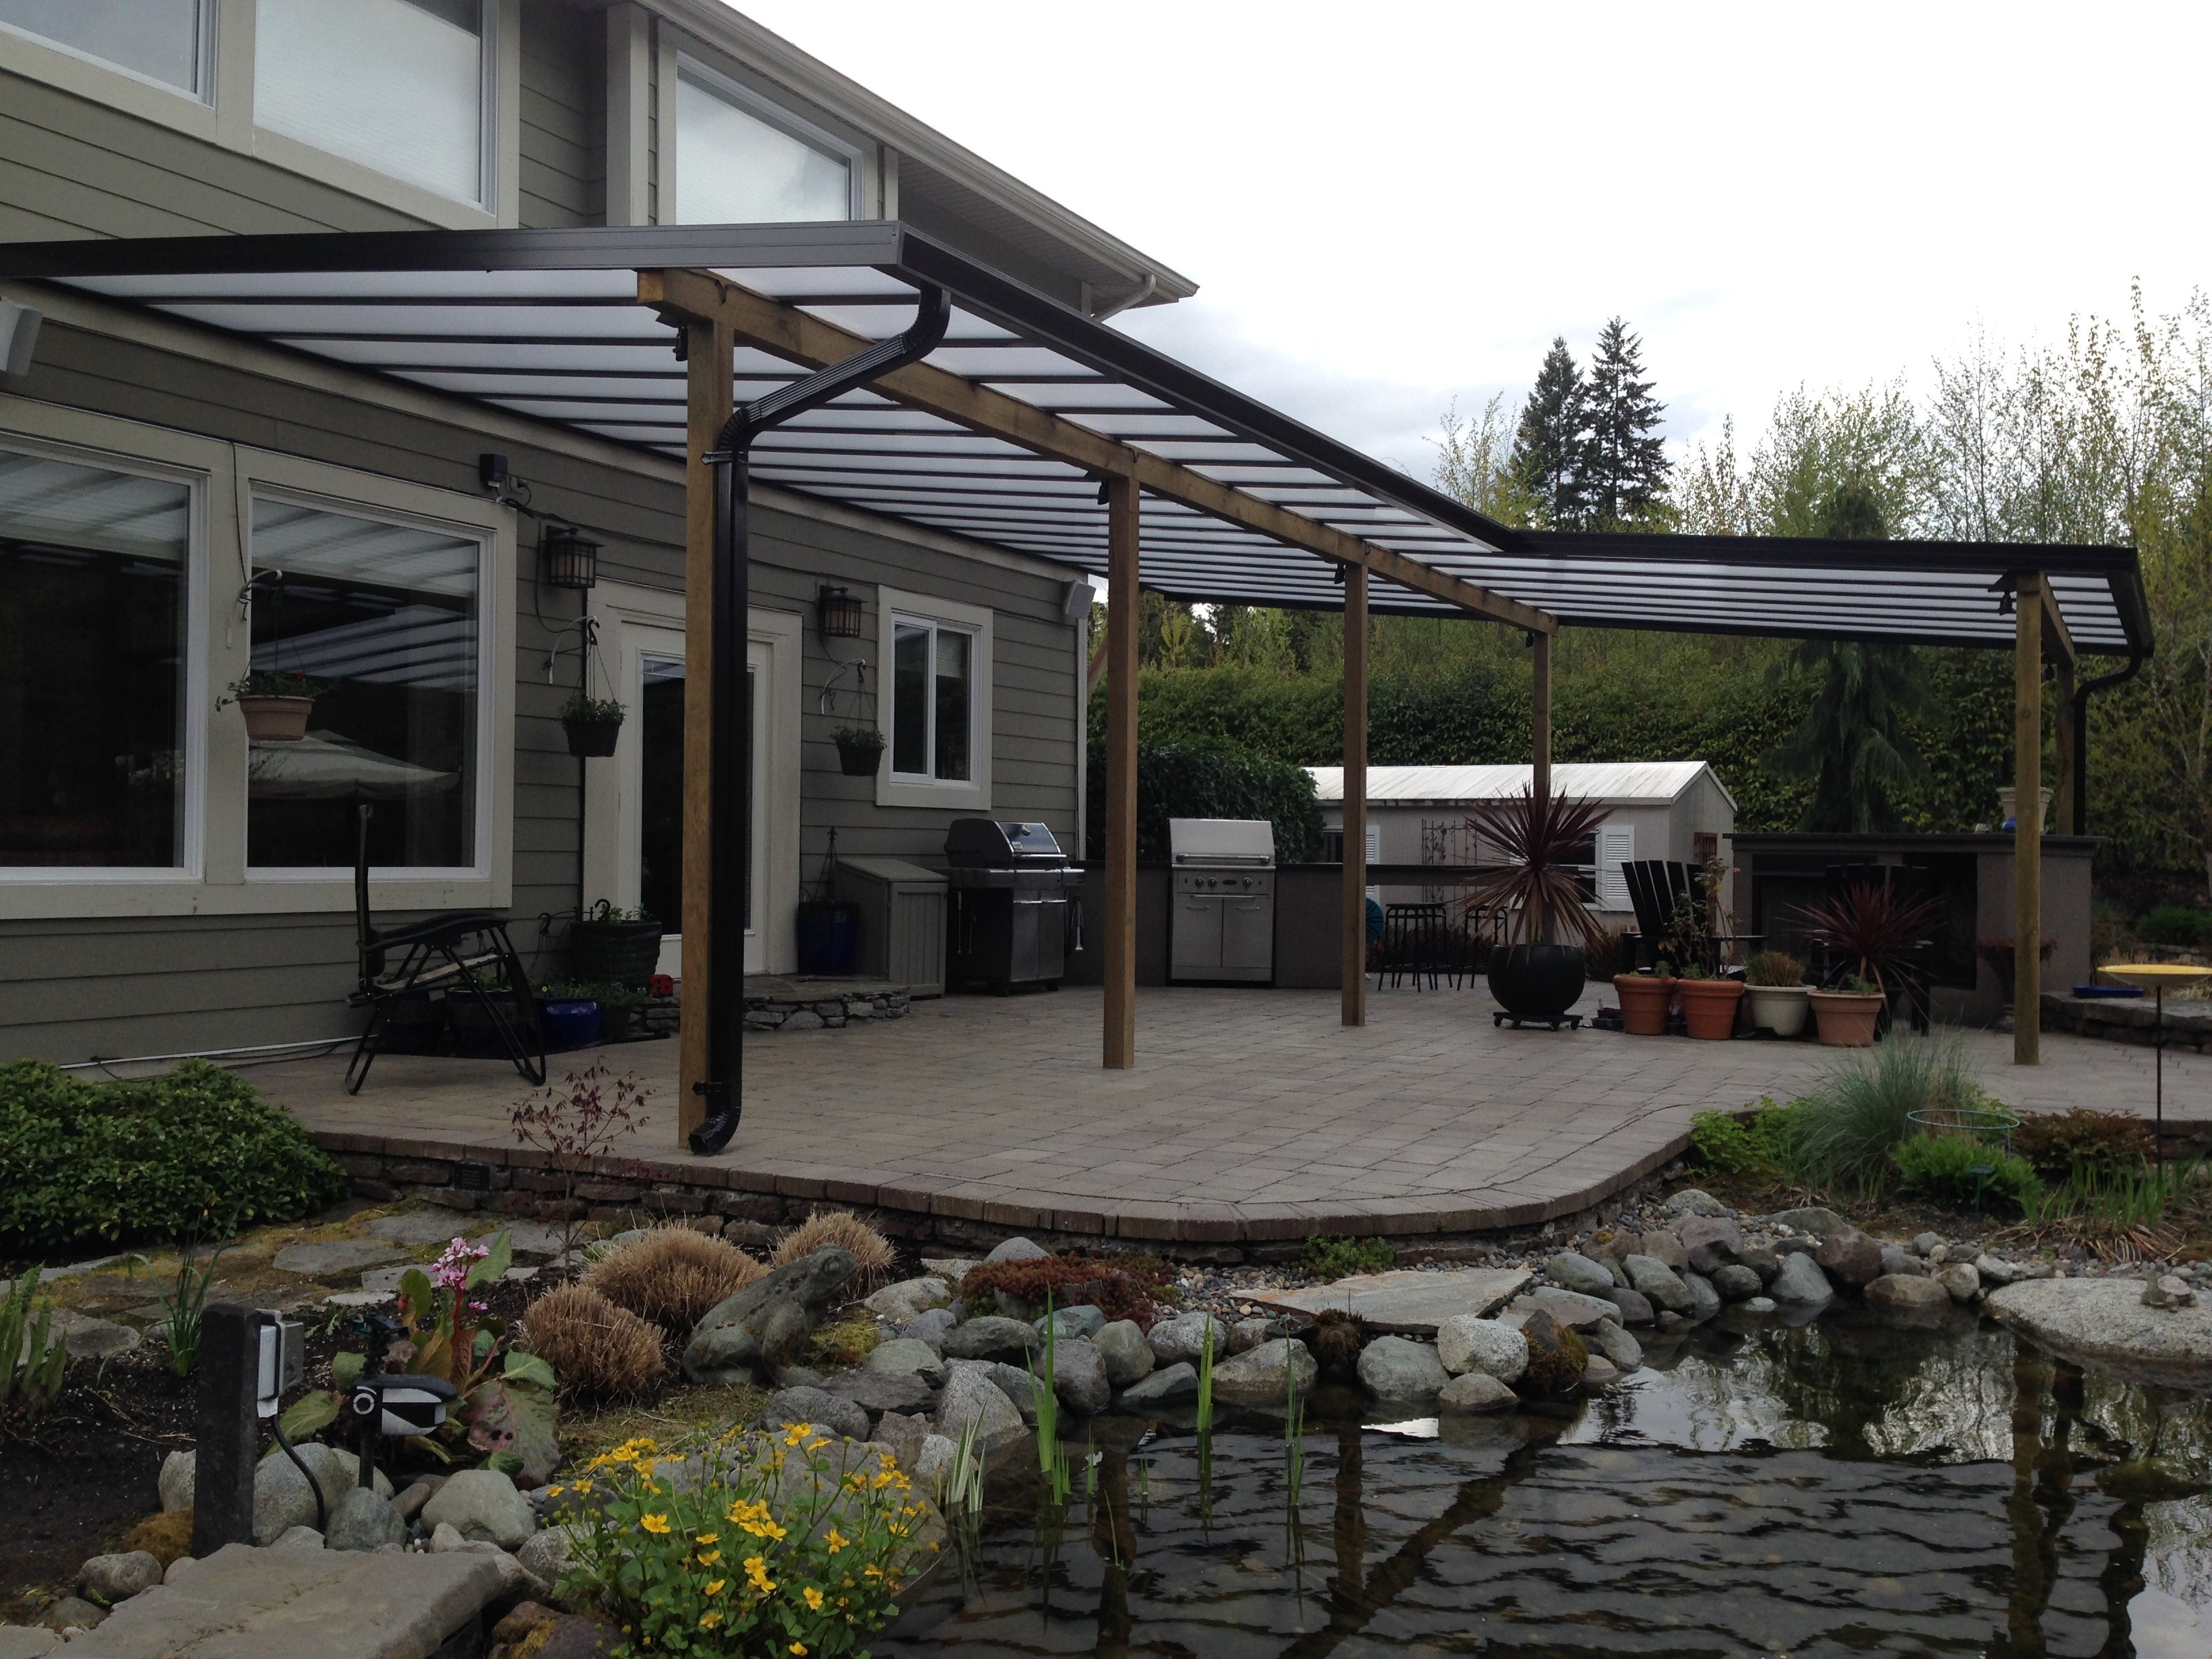 patio covers, deck covering options